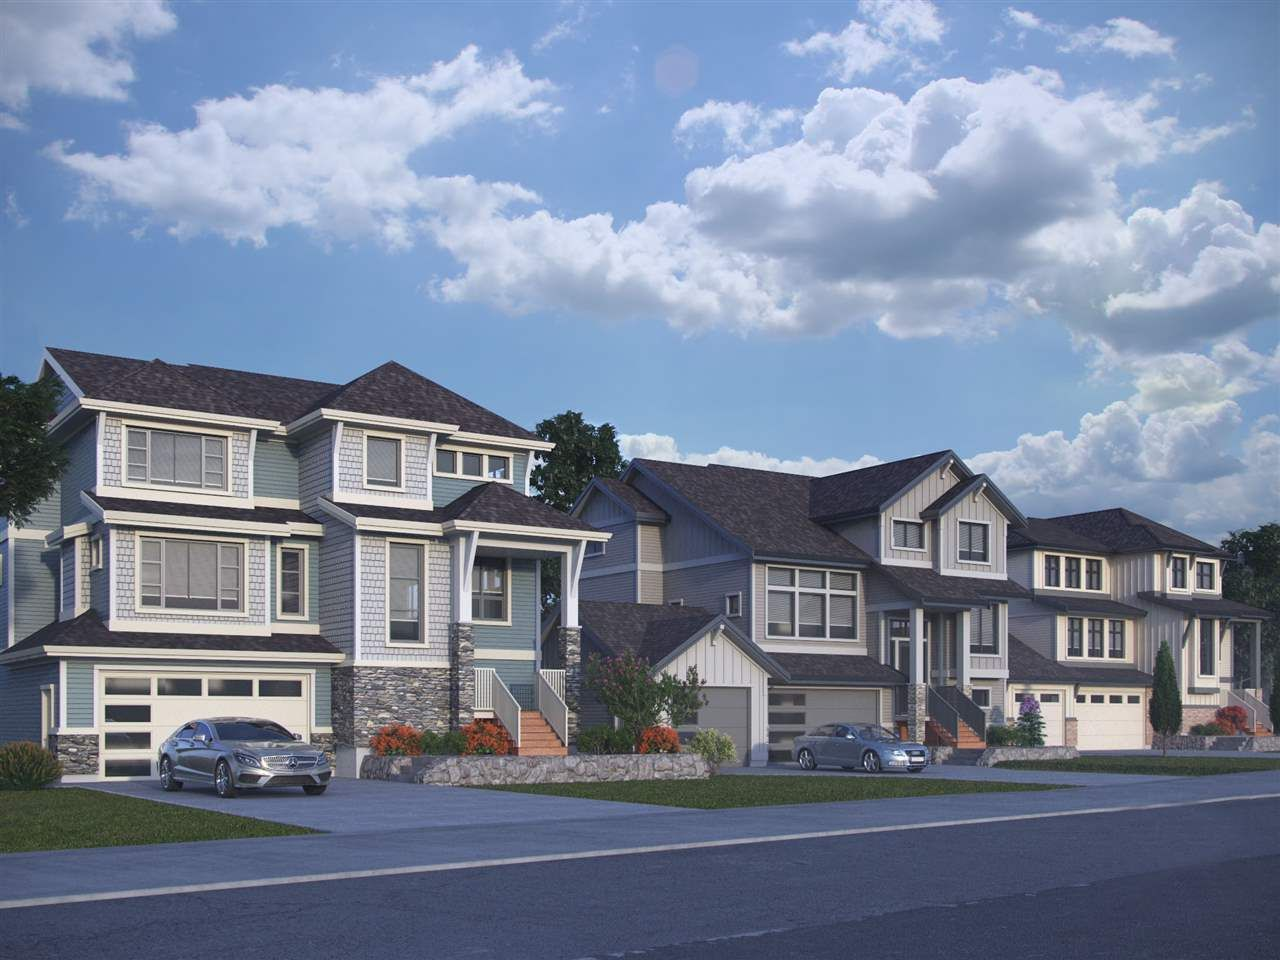 Main Photo: 47264 SWALLOW Place in Chilliwack: Little Mountain House for sale : MLS®# R2522587